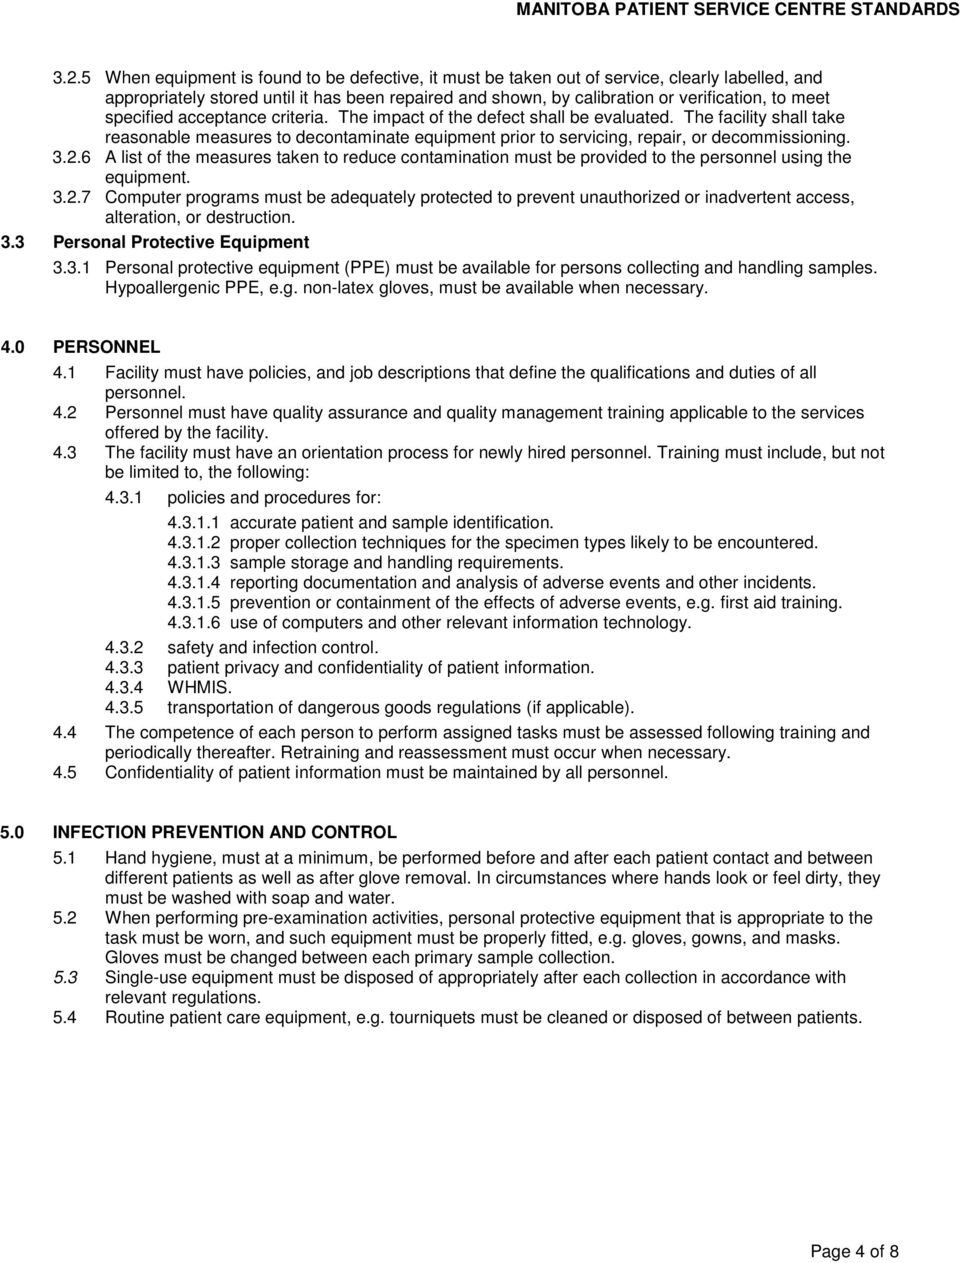 3.2.6 A list of the measures taken to reduce contamination must be provided to the personnel using the equipment. 3.2.7 Computer programs must be adequately protected to prevent unauthorized or inadvertent access, alteration, or destruction.